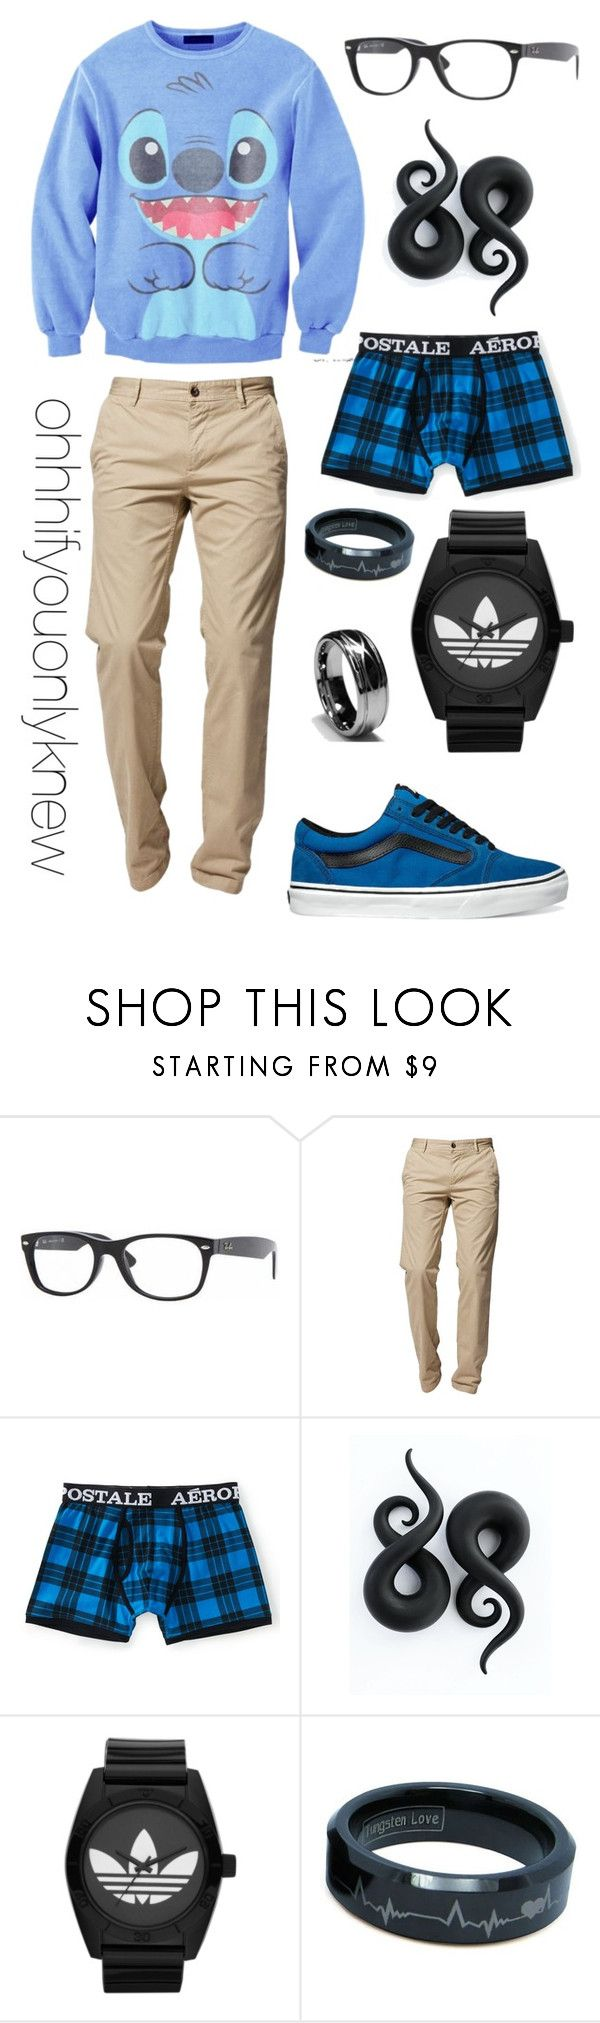 """Untitled #61"" by ohhhifyouonlyknew ❤ liked on Polyvore featuring Ray-Ban, BOSS Orange, Aéropostale, Vans, adidas Originals, casual, my creations, my style, comfy and disney"